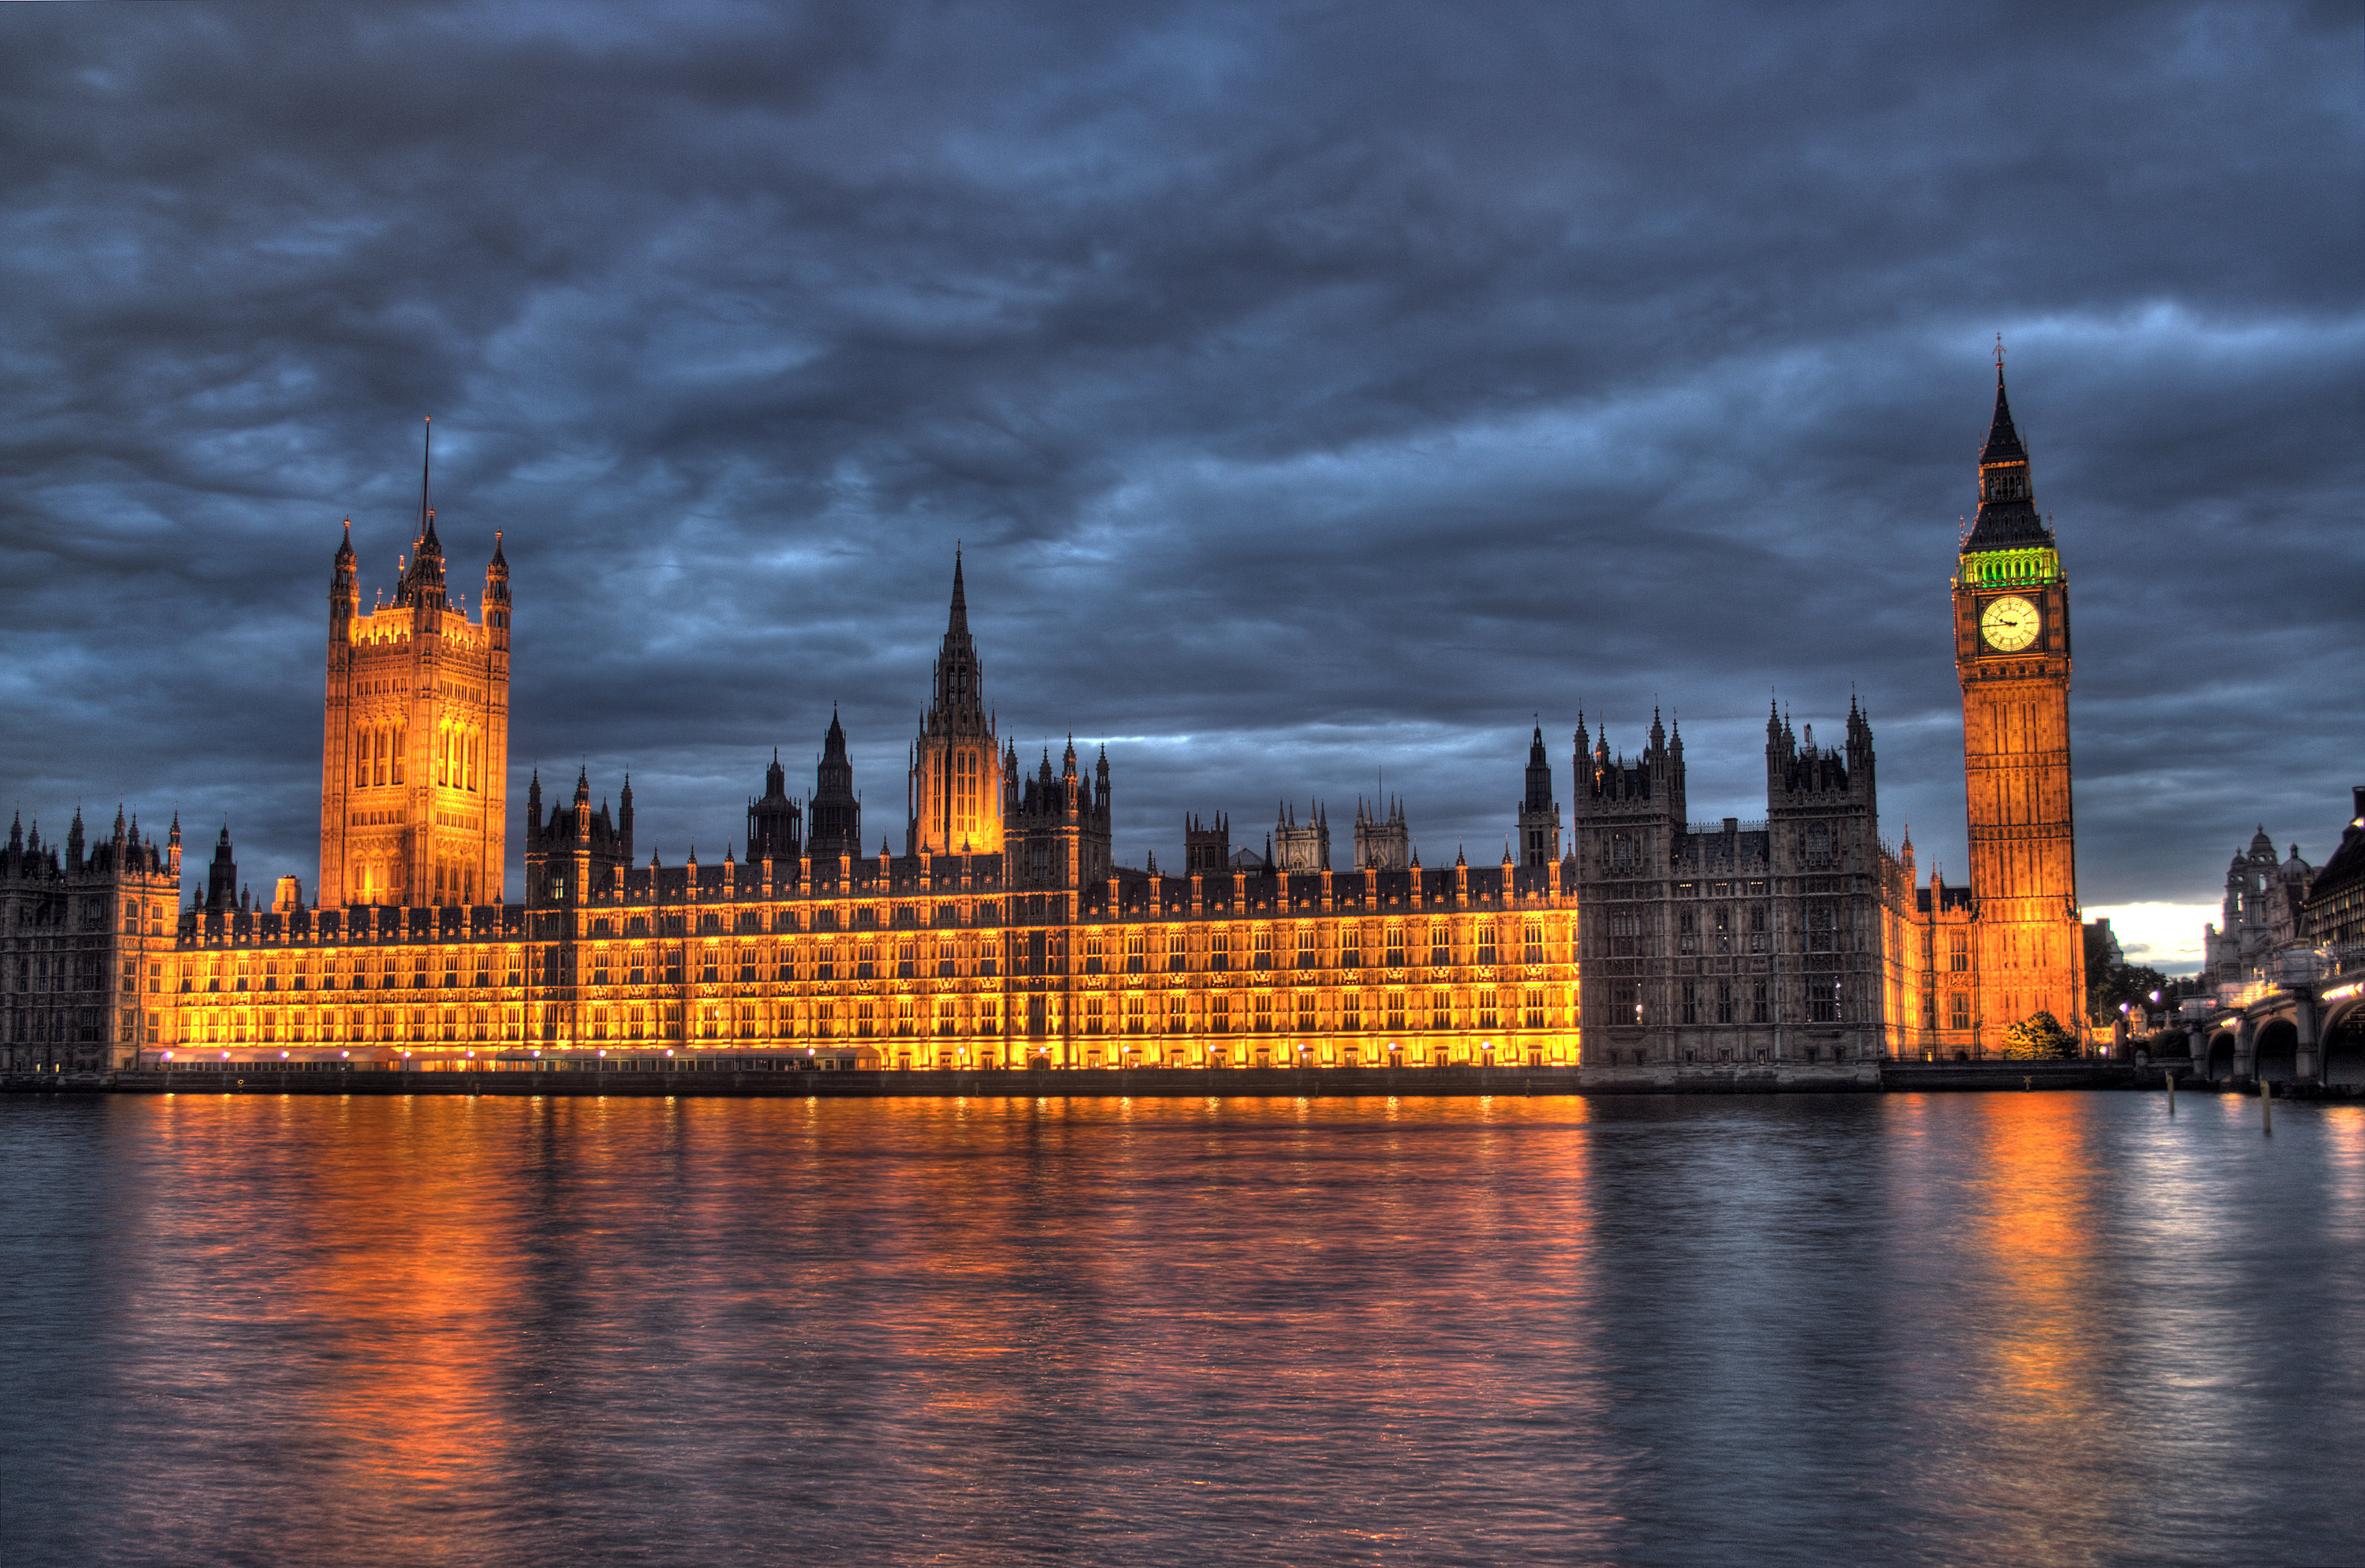 A view of the Houses of Parliament and Big Ben over the Thames